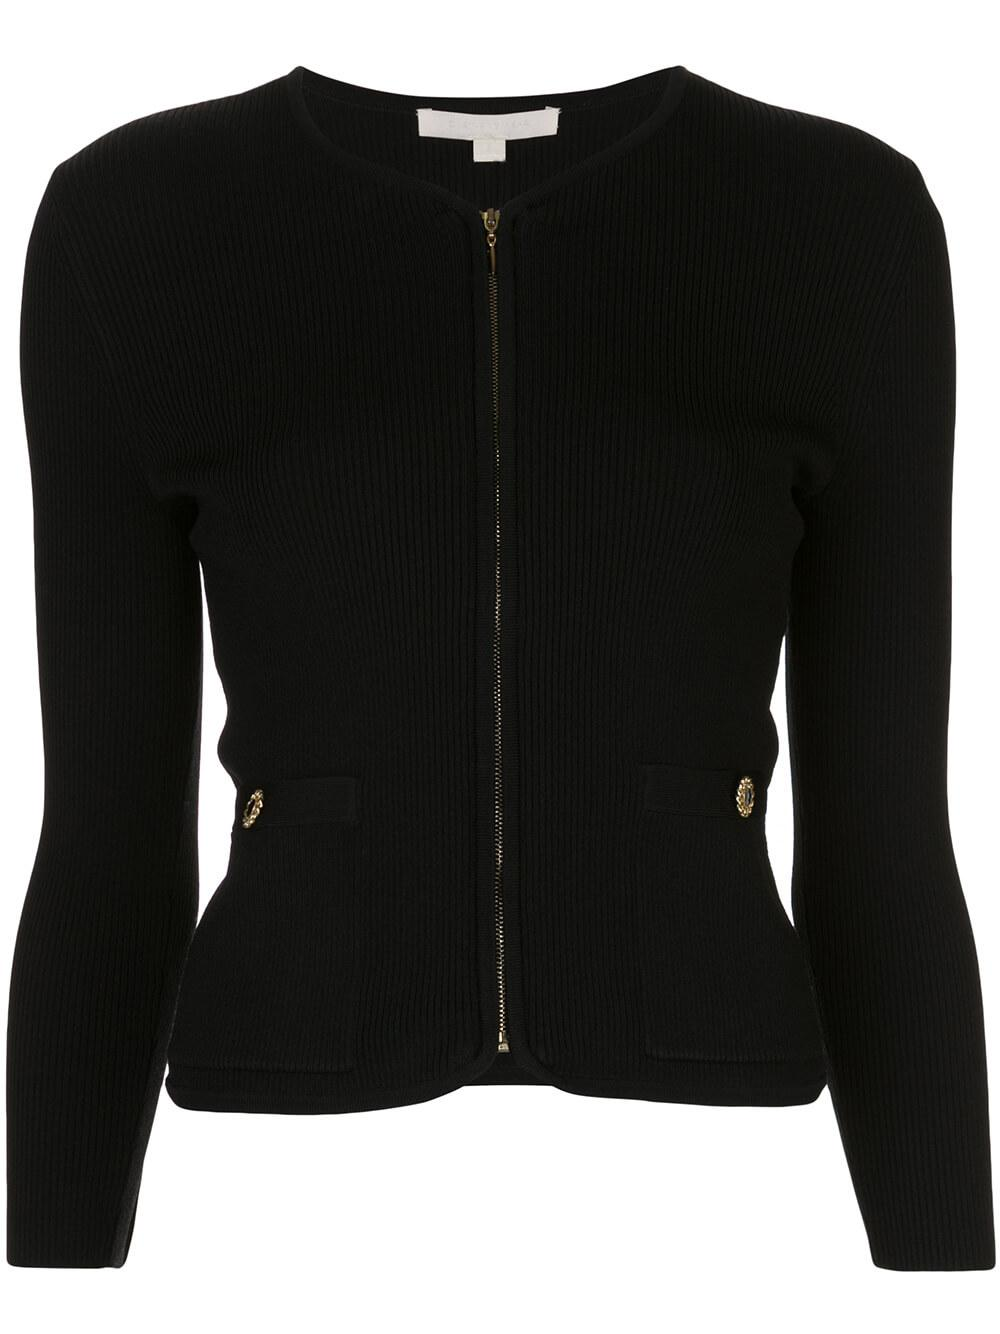 Long Sleeve Rib Knit Zip -Up Jacket